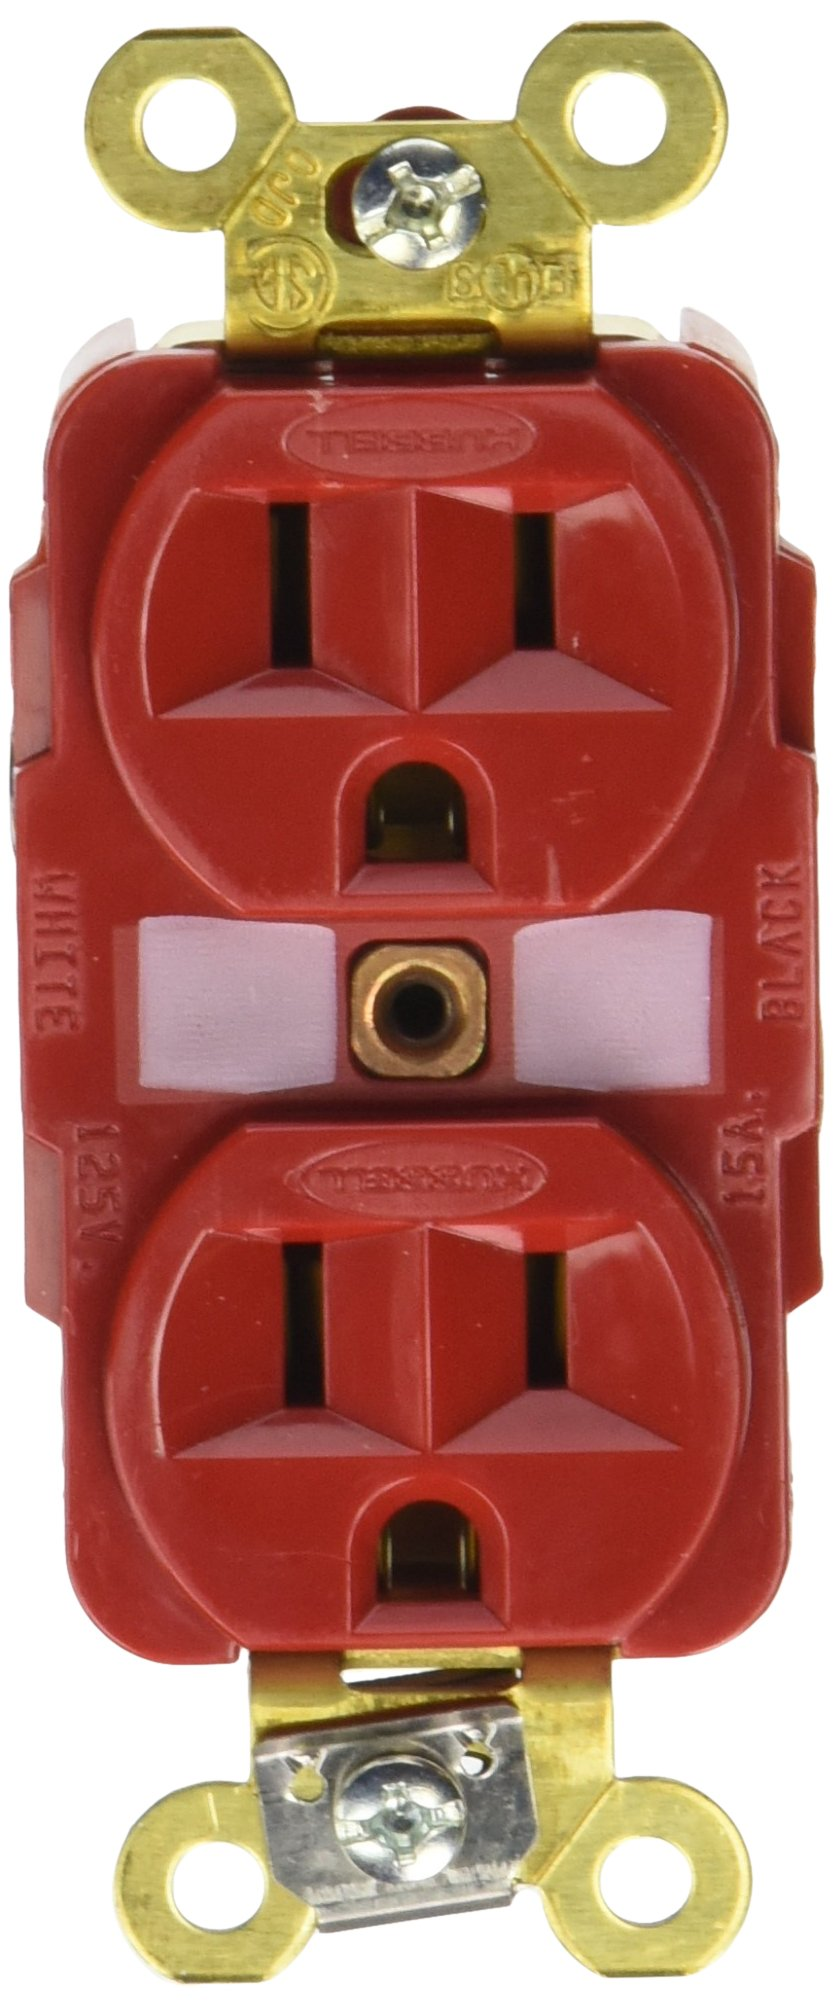 Hubbell HBL5262R Duplex Receptacle, HD Industrial Grade, 15 amp, 125V, 5-15R, Red